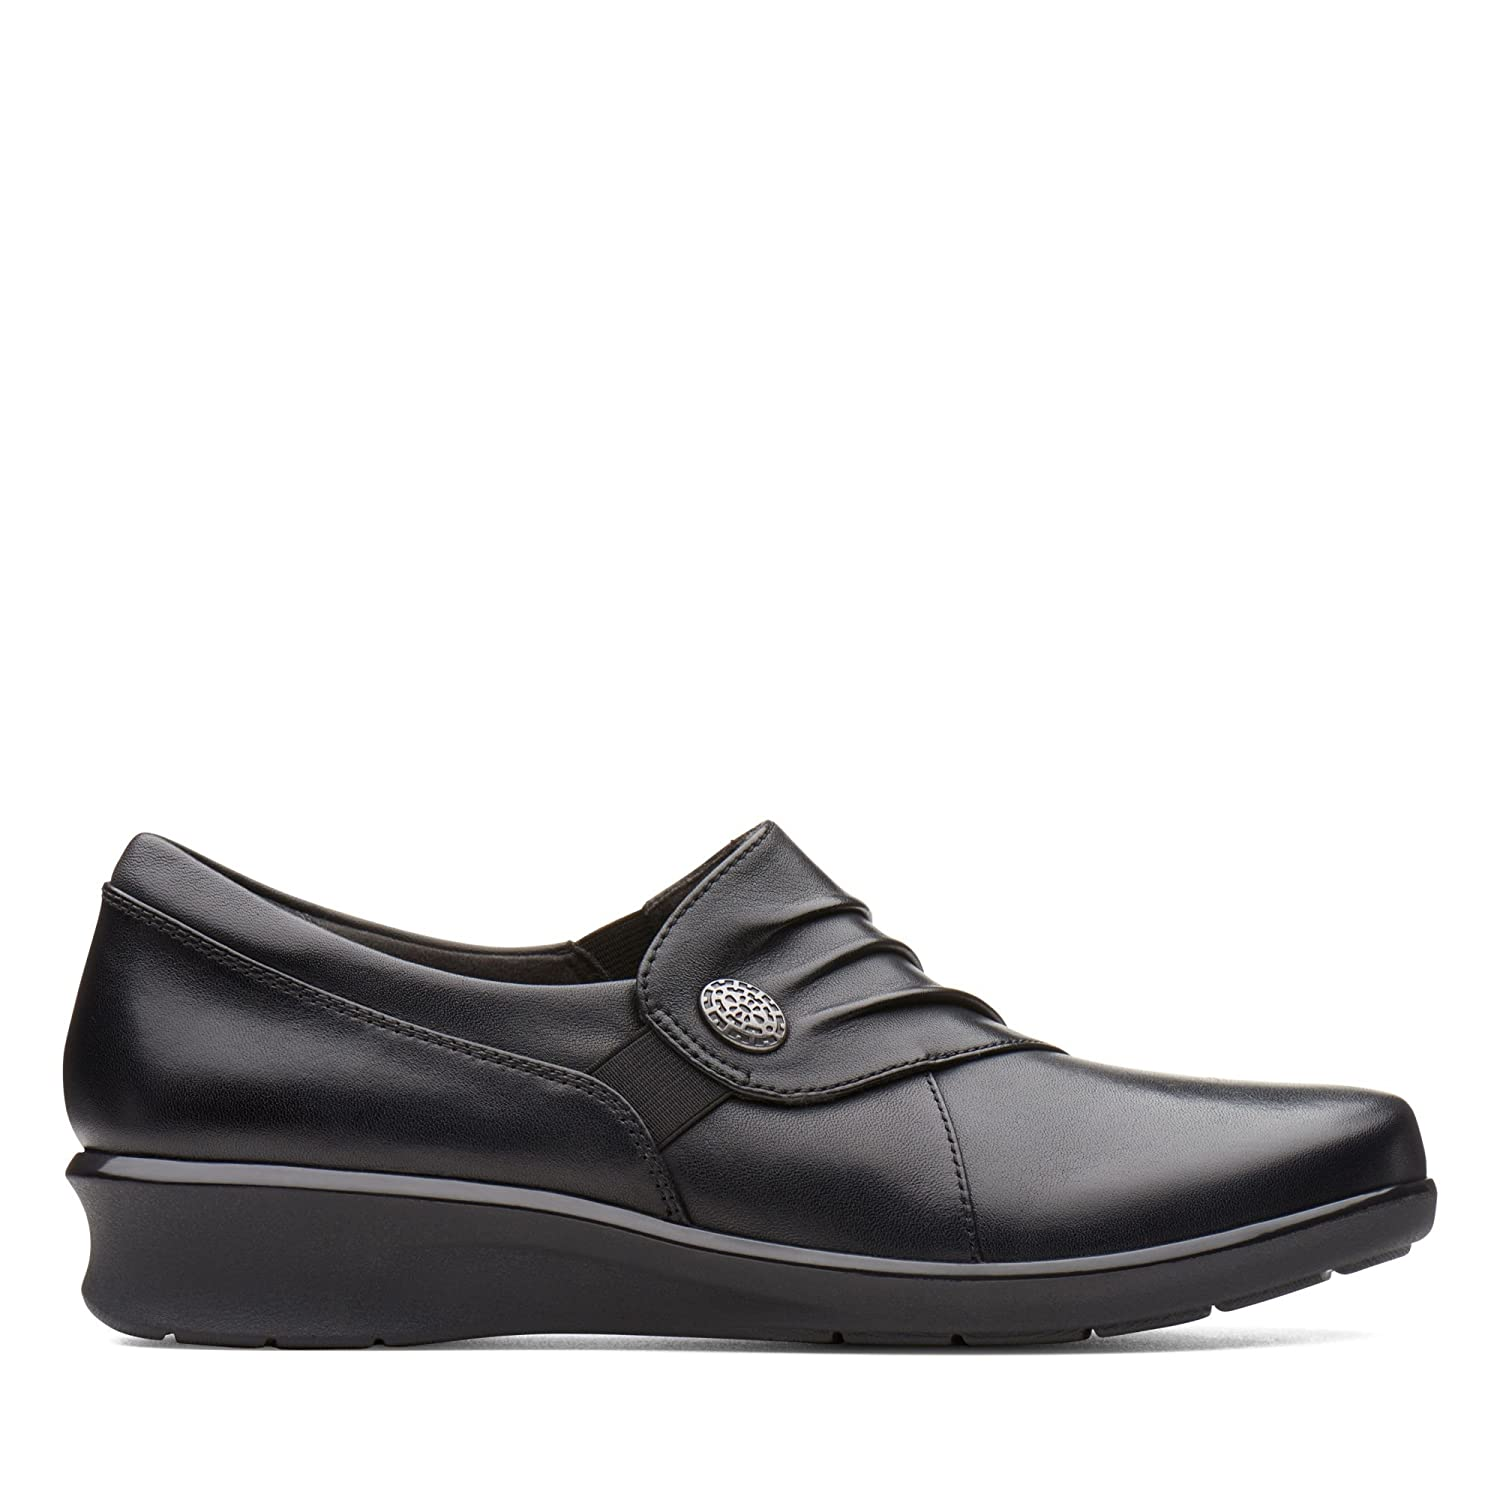 bfd6ea2698ae2 Clarks Women's Hope Roxanne Loafers